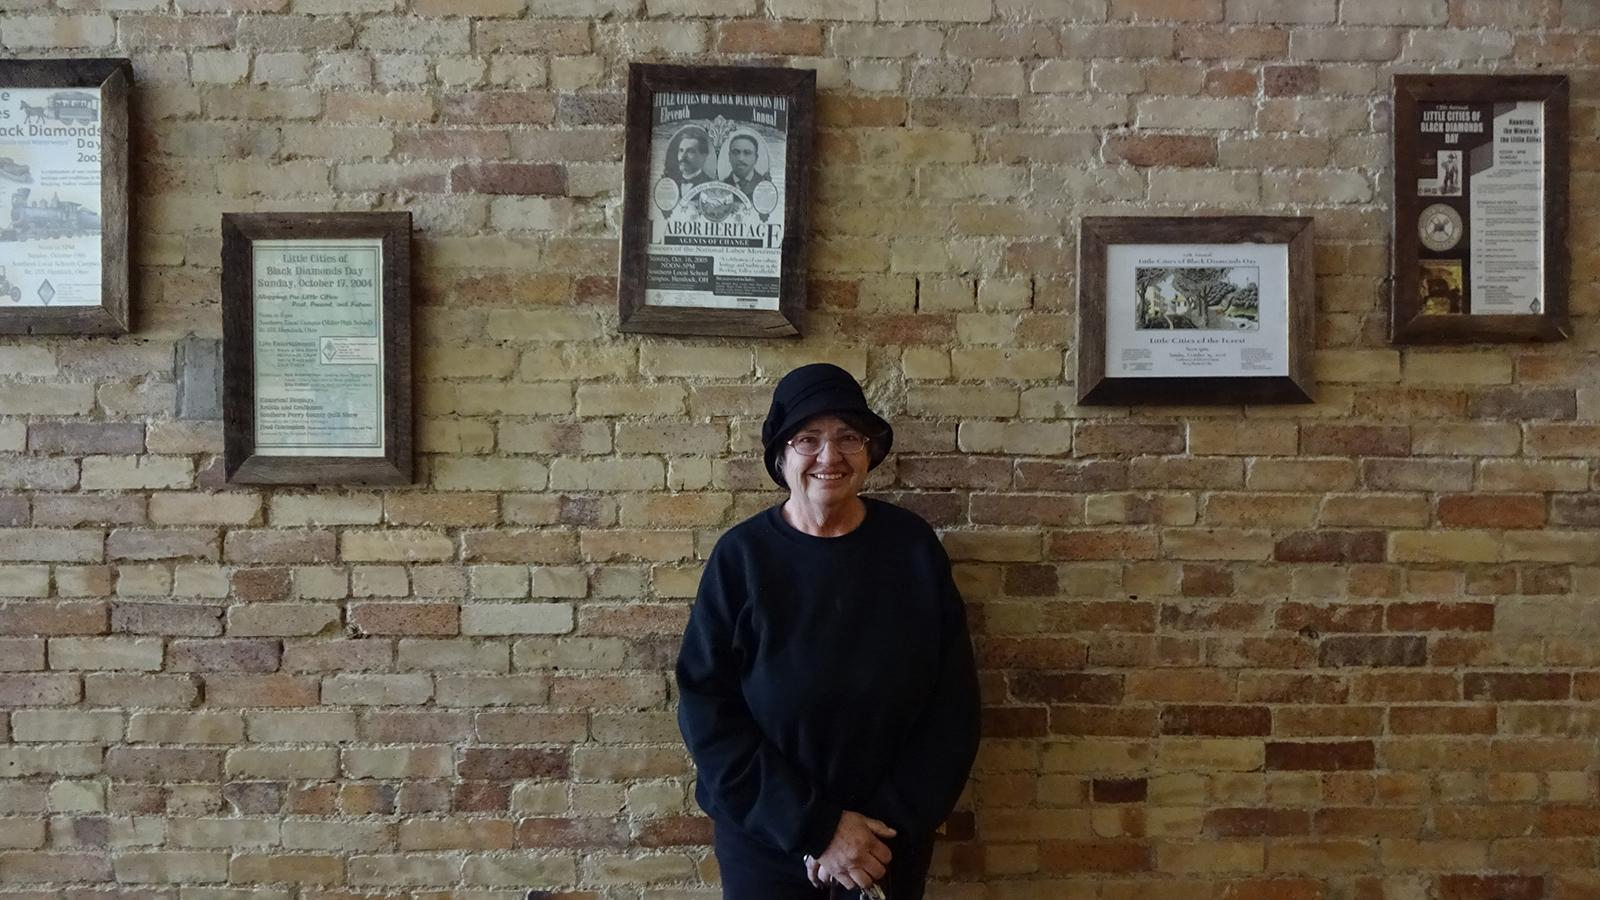 Cheryl Blosser pictured in the Tecumseh Theater amongst past Little Cities of Black Diamonds Day posters